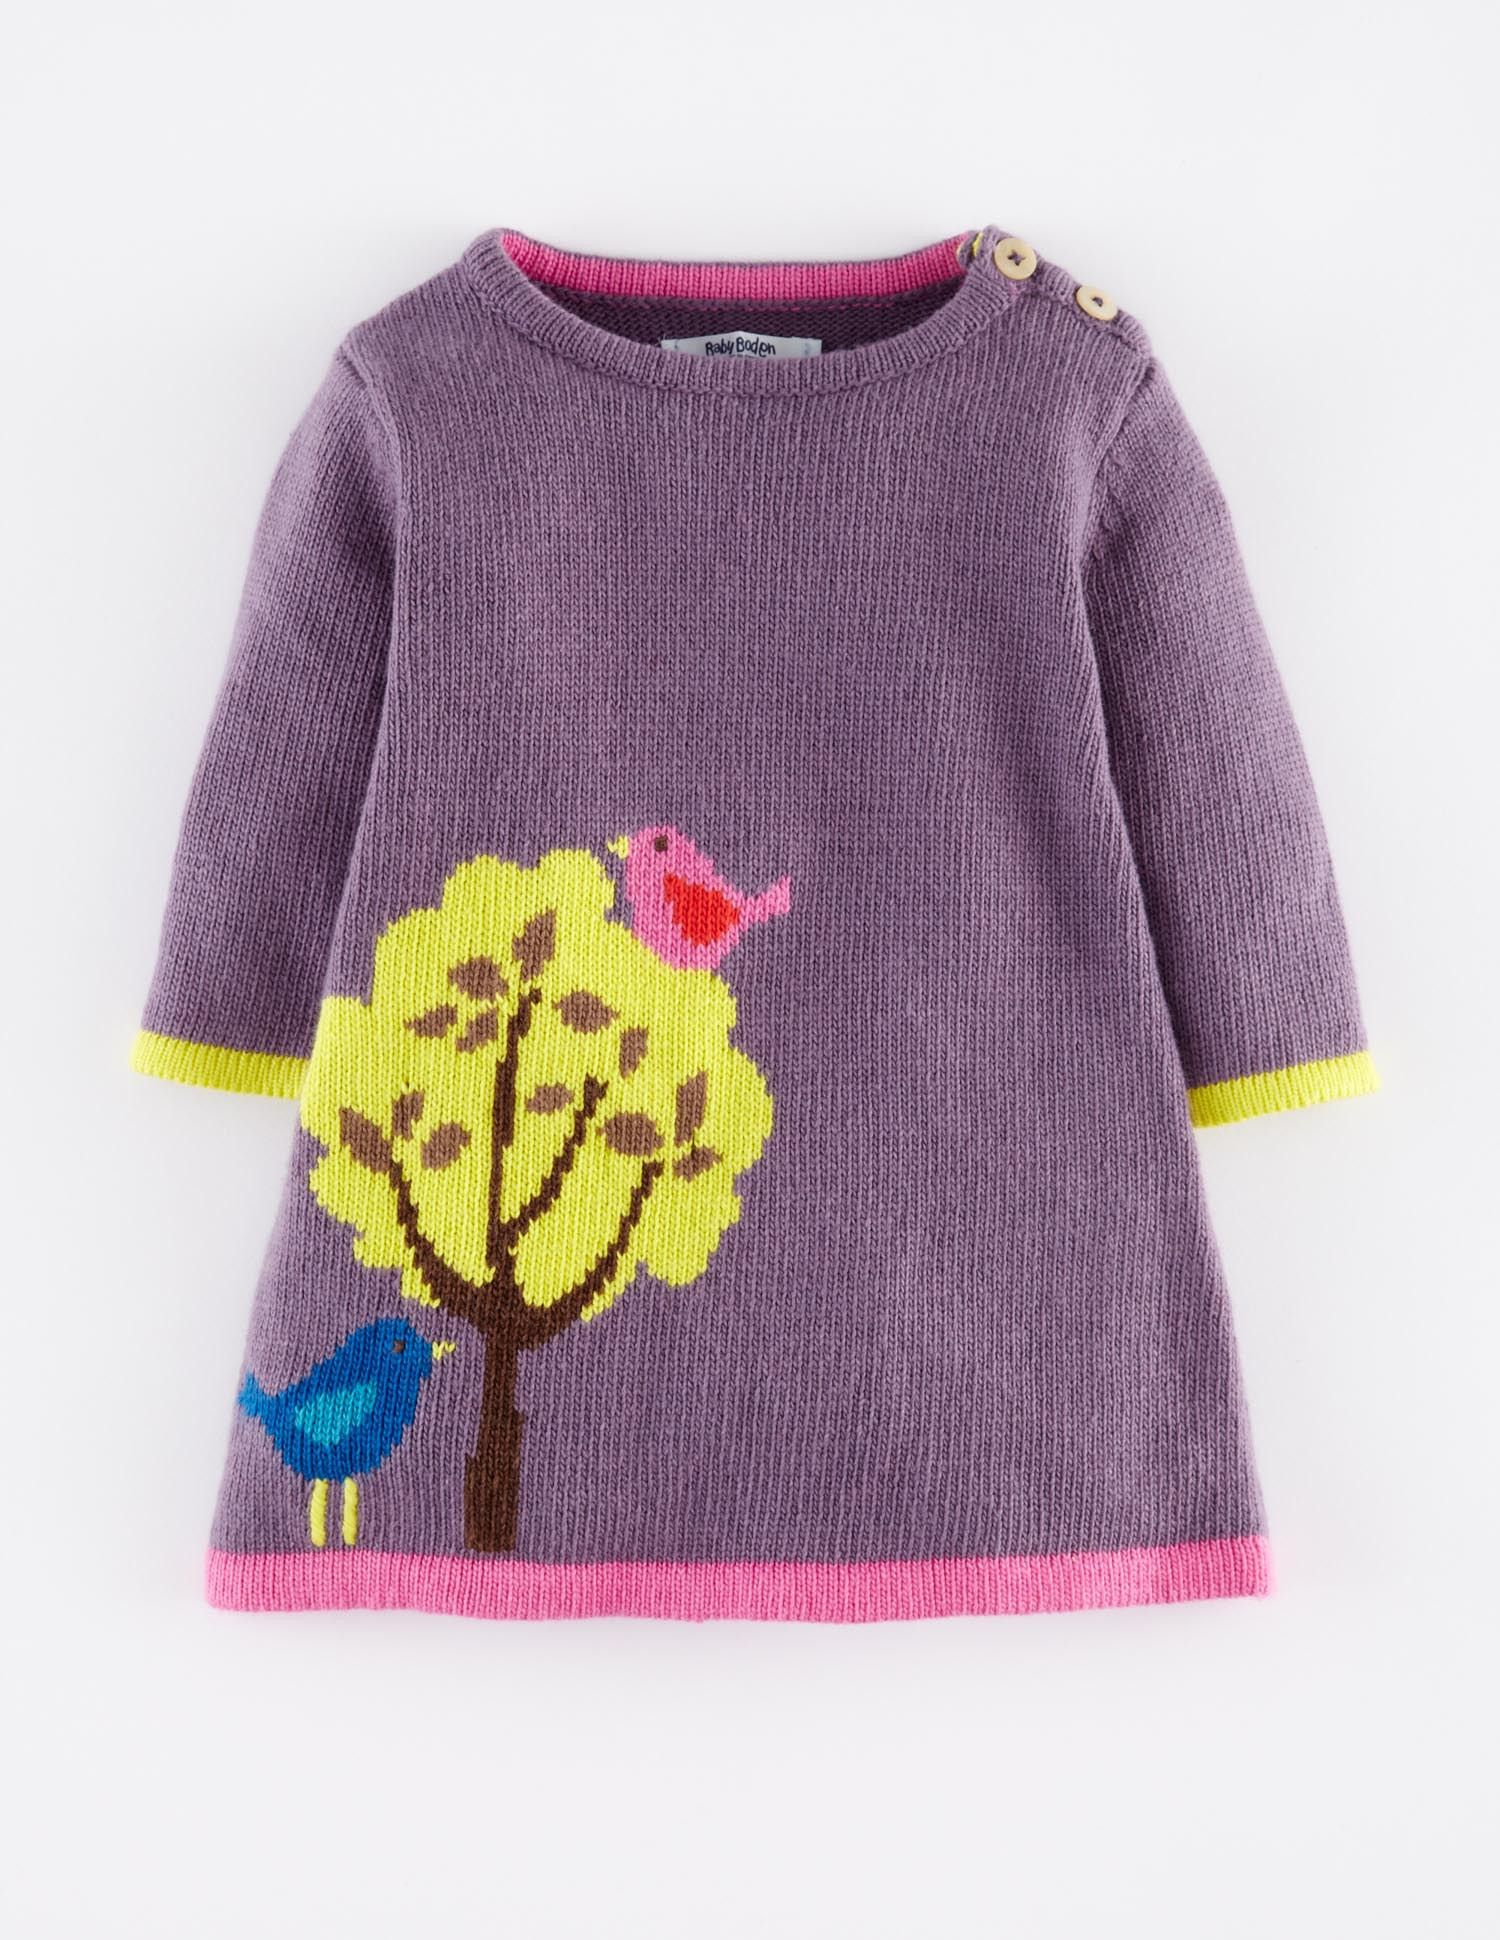 Mini Boden My Baby Knitted Dress in Thistle Tree